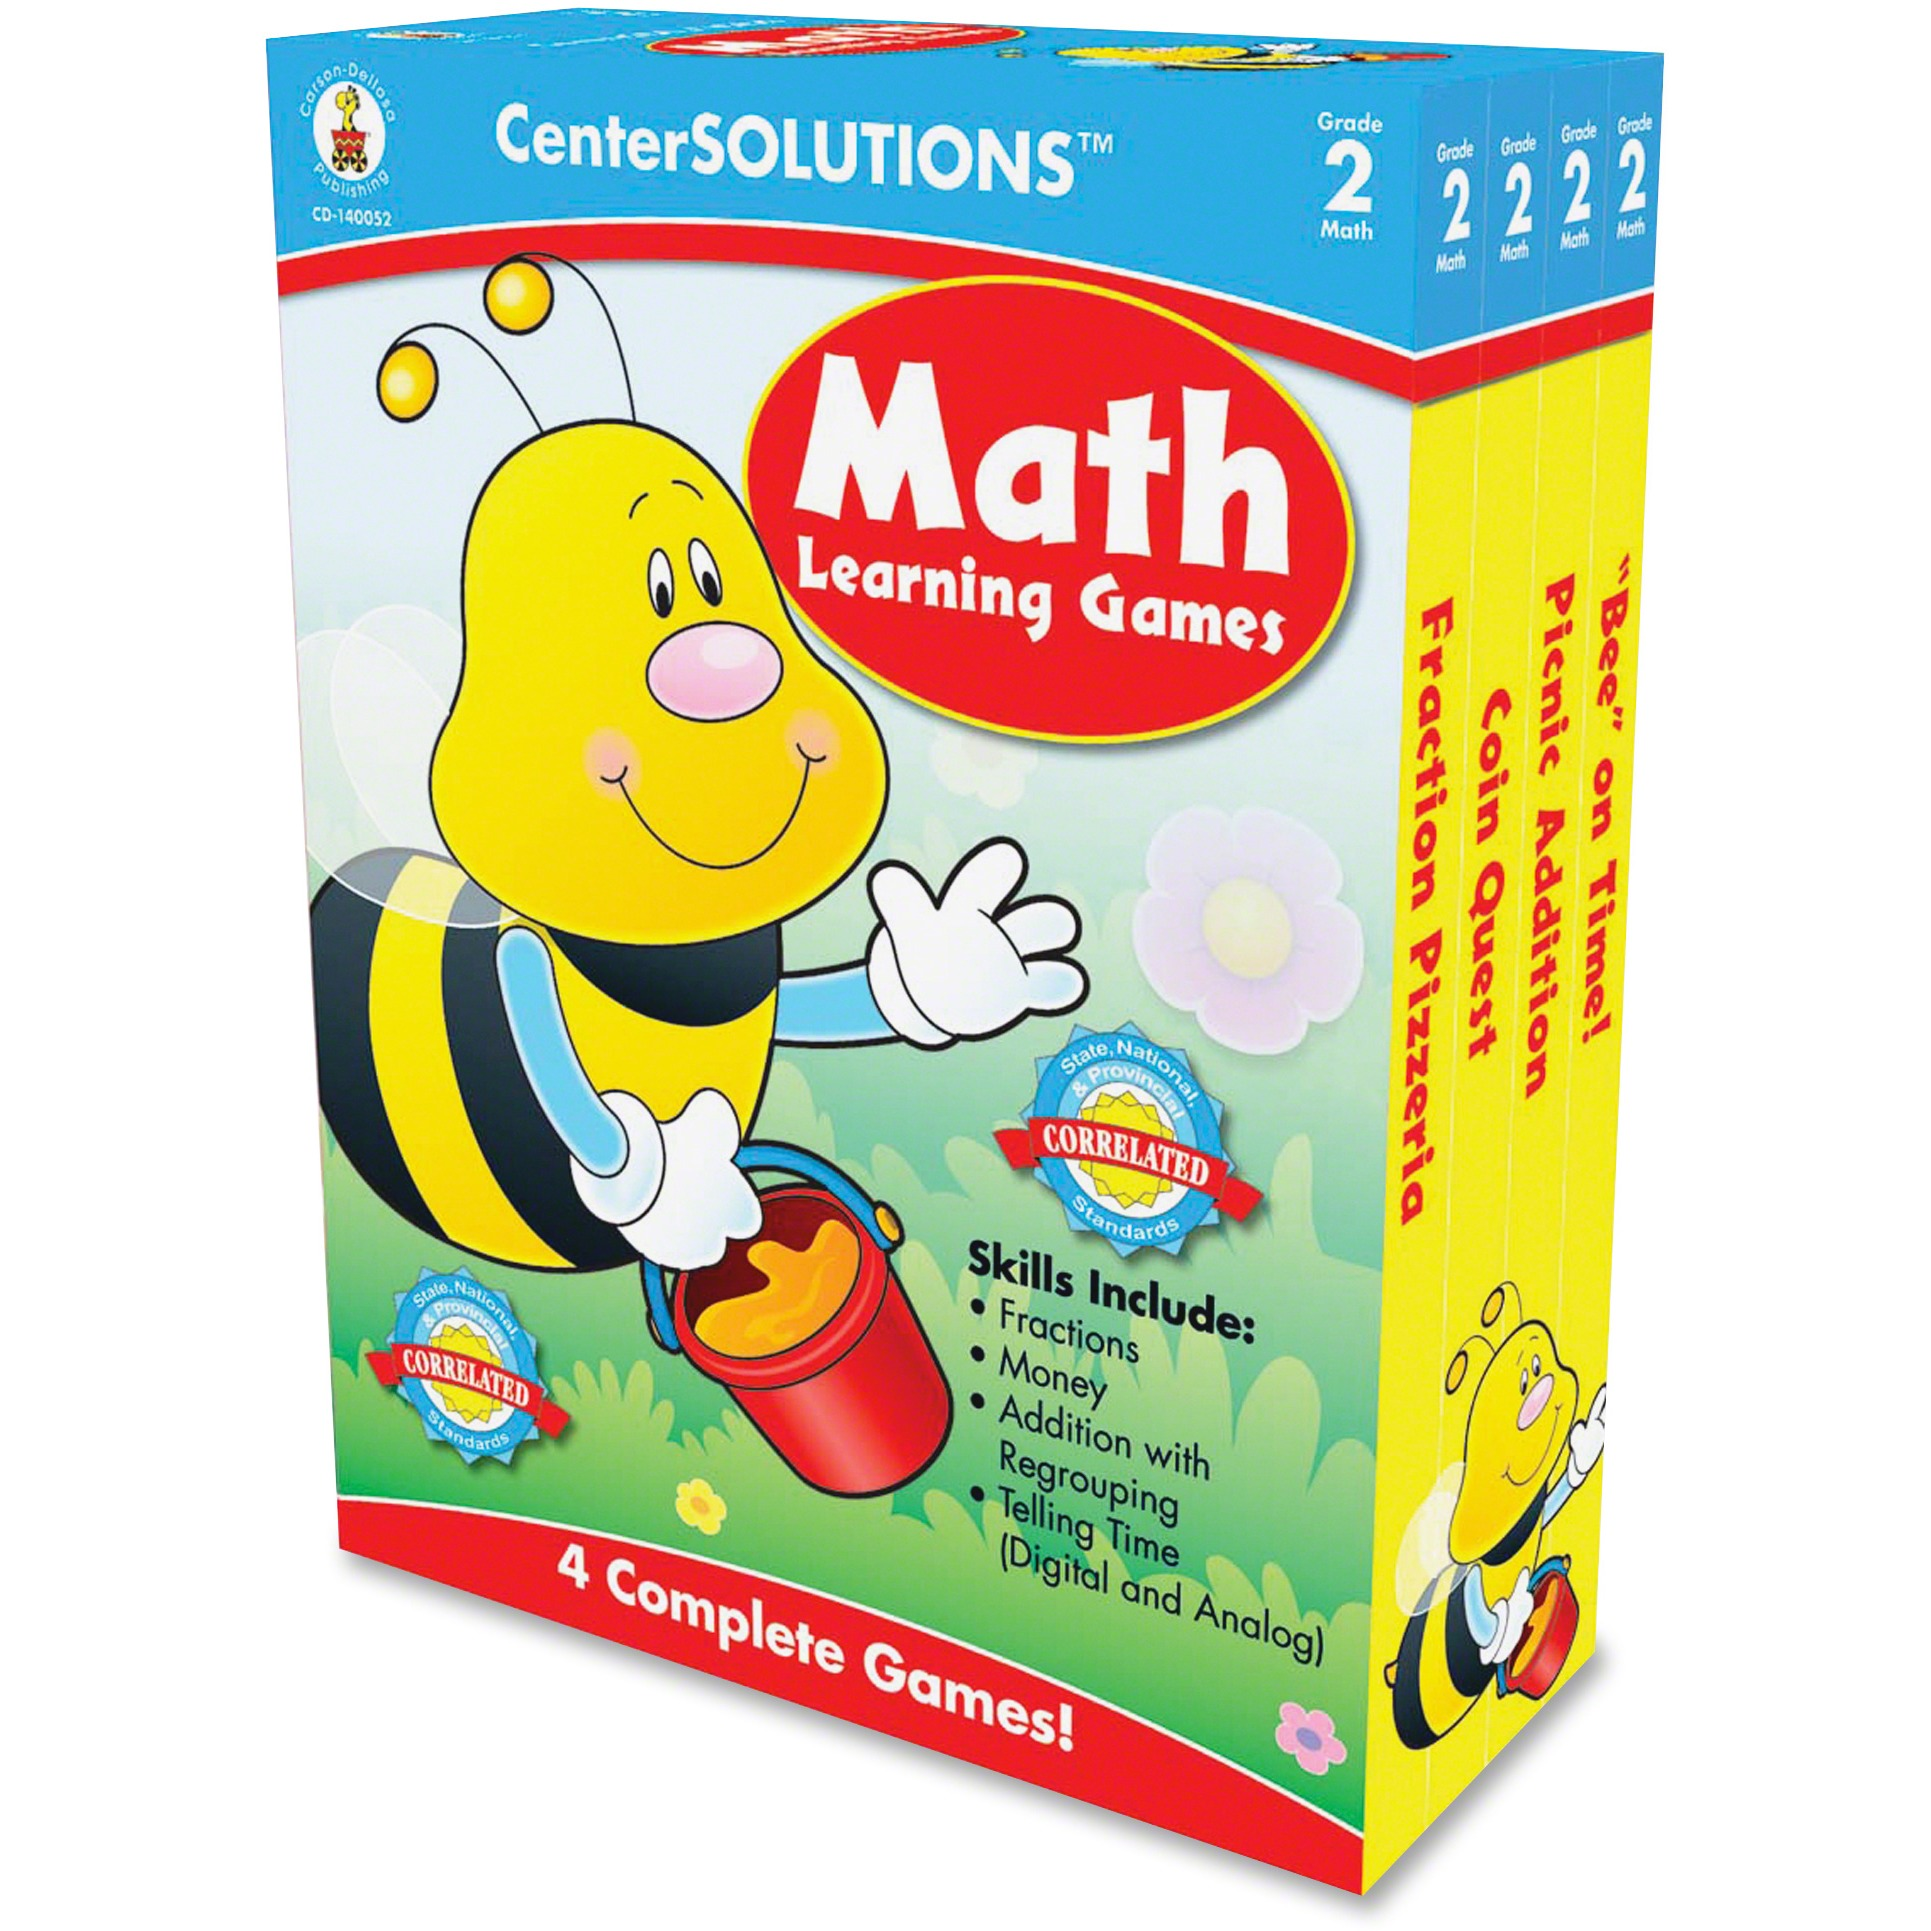 CenterSOLUTIONS, CDP140052, Grade 2 CenterSolutions Math Learning Games, 1 Each